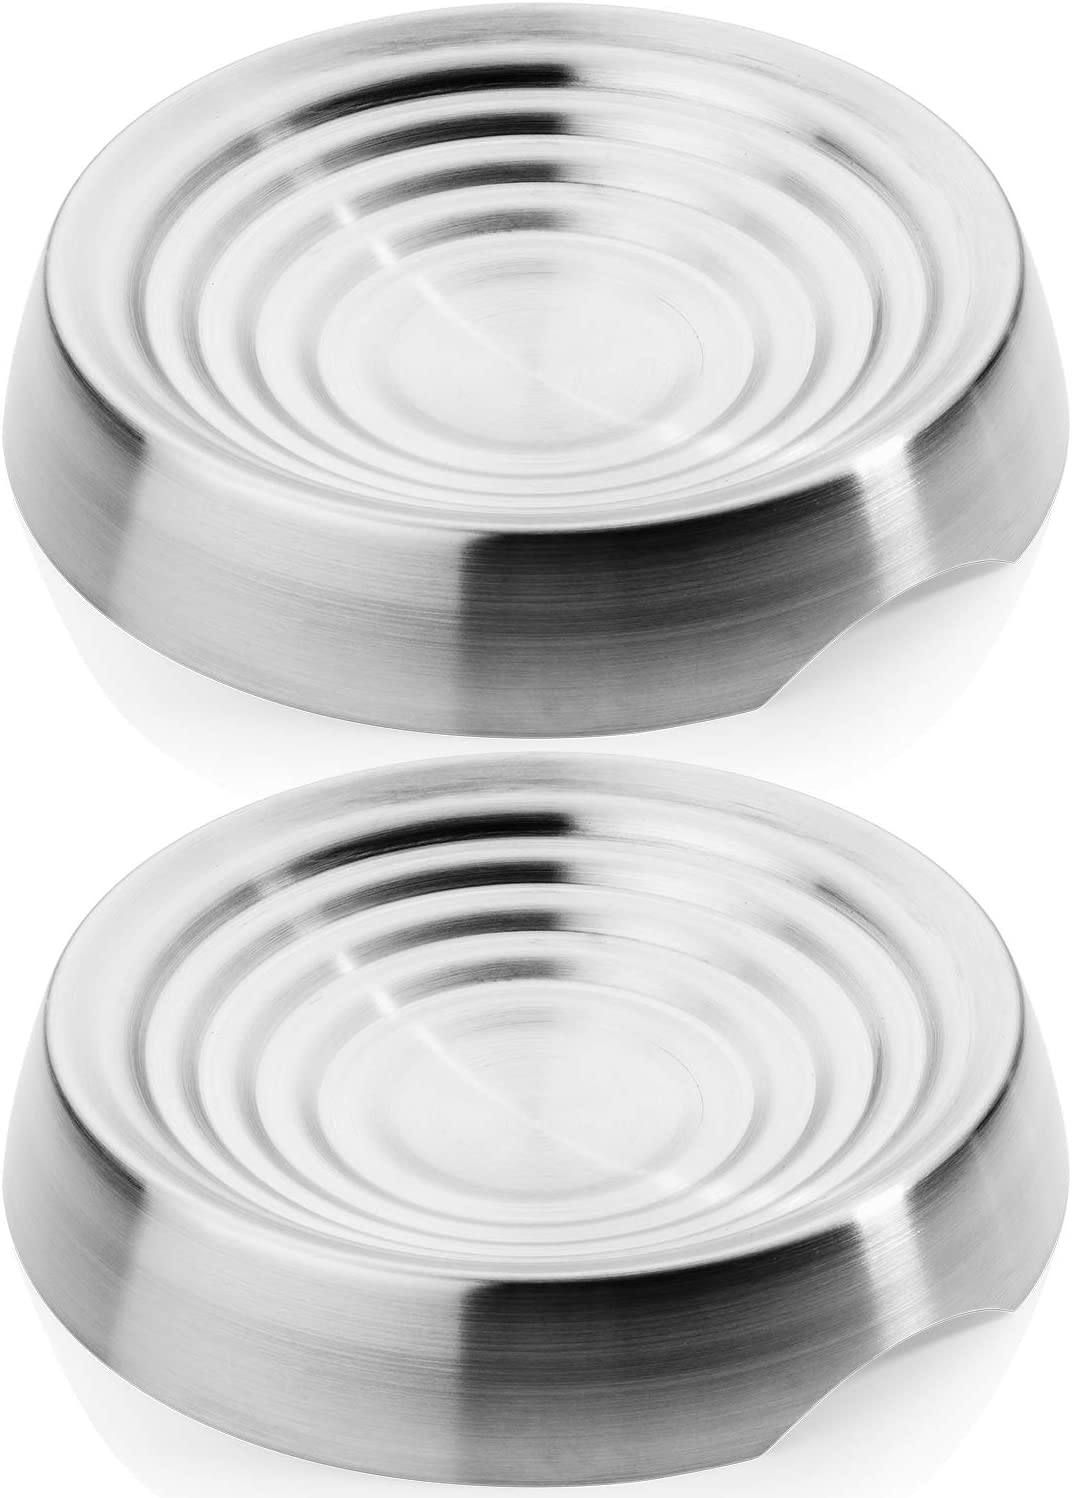 CatGuru Whisker Stress Free Cat Food Bowl, Reliefs Whisker Fatigue, Wide Cat Dish, Non Slip Cat Feeding Bowls, Shallow Cat Food Bowls, Non Skid Pet Bowls for Cats (Round - Set of 2, Stainless Steel)